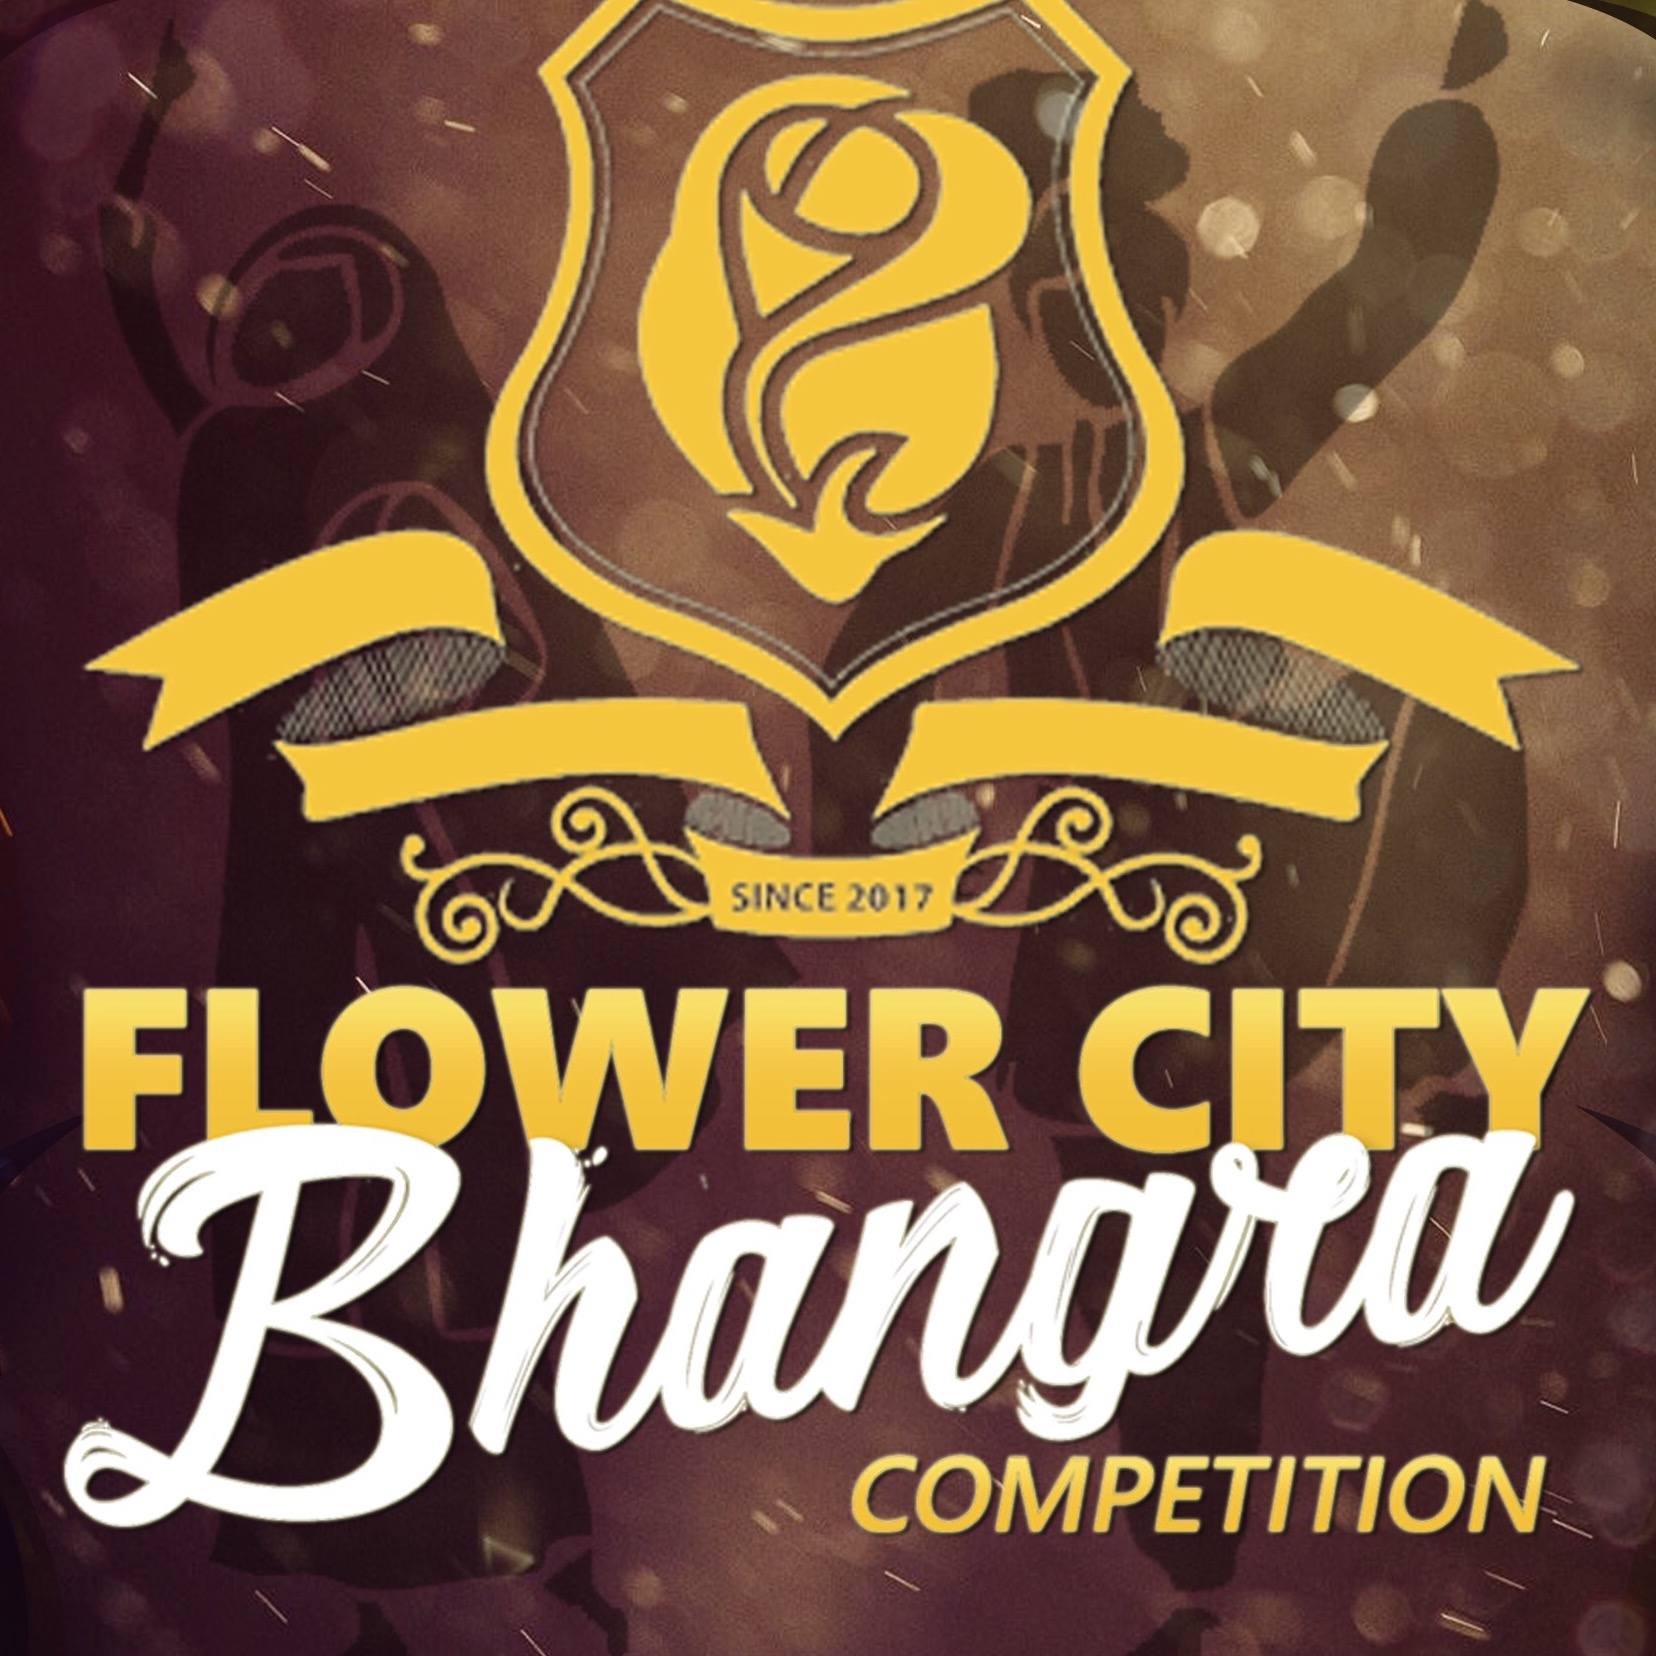 Flower City Bhangra Competition